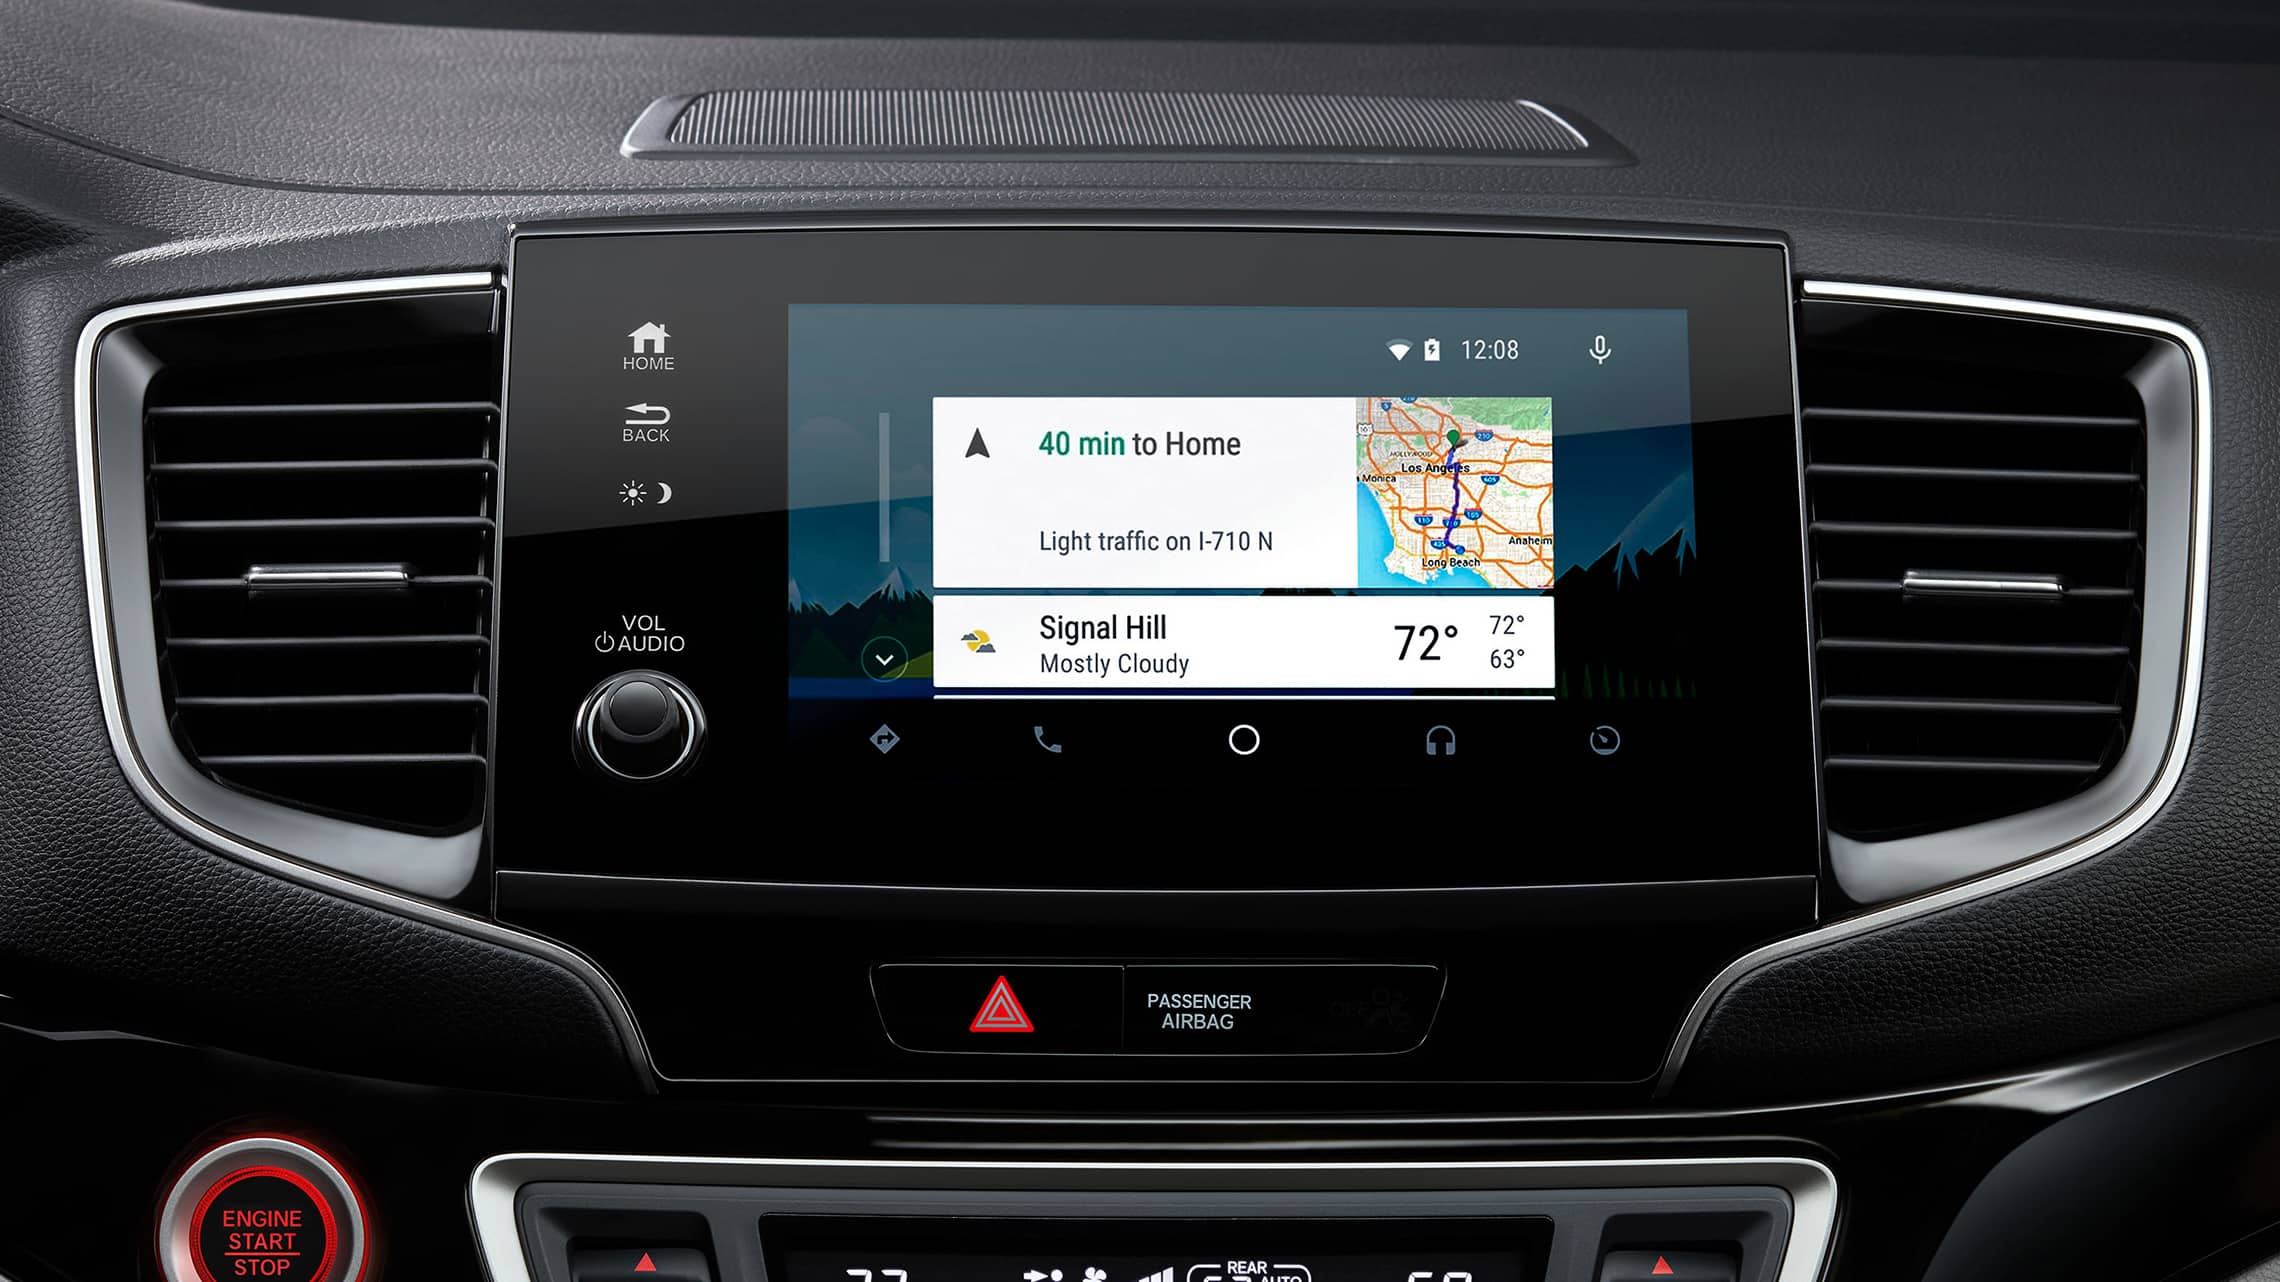 Android Auto™ home screen detail on Display Audio touch-screen in 2021 Honda Pilot Elite.